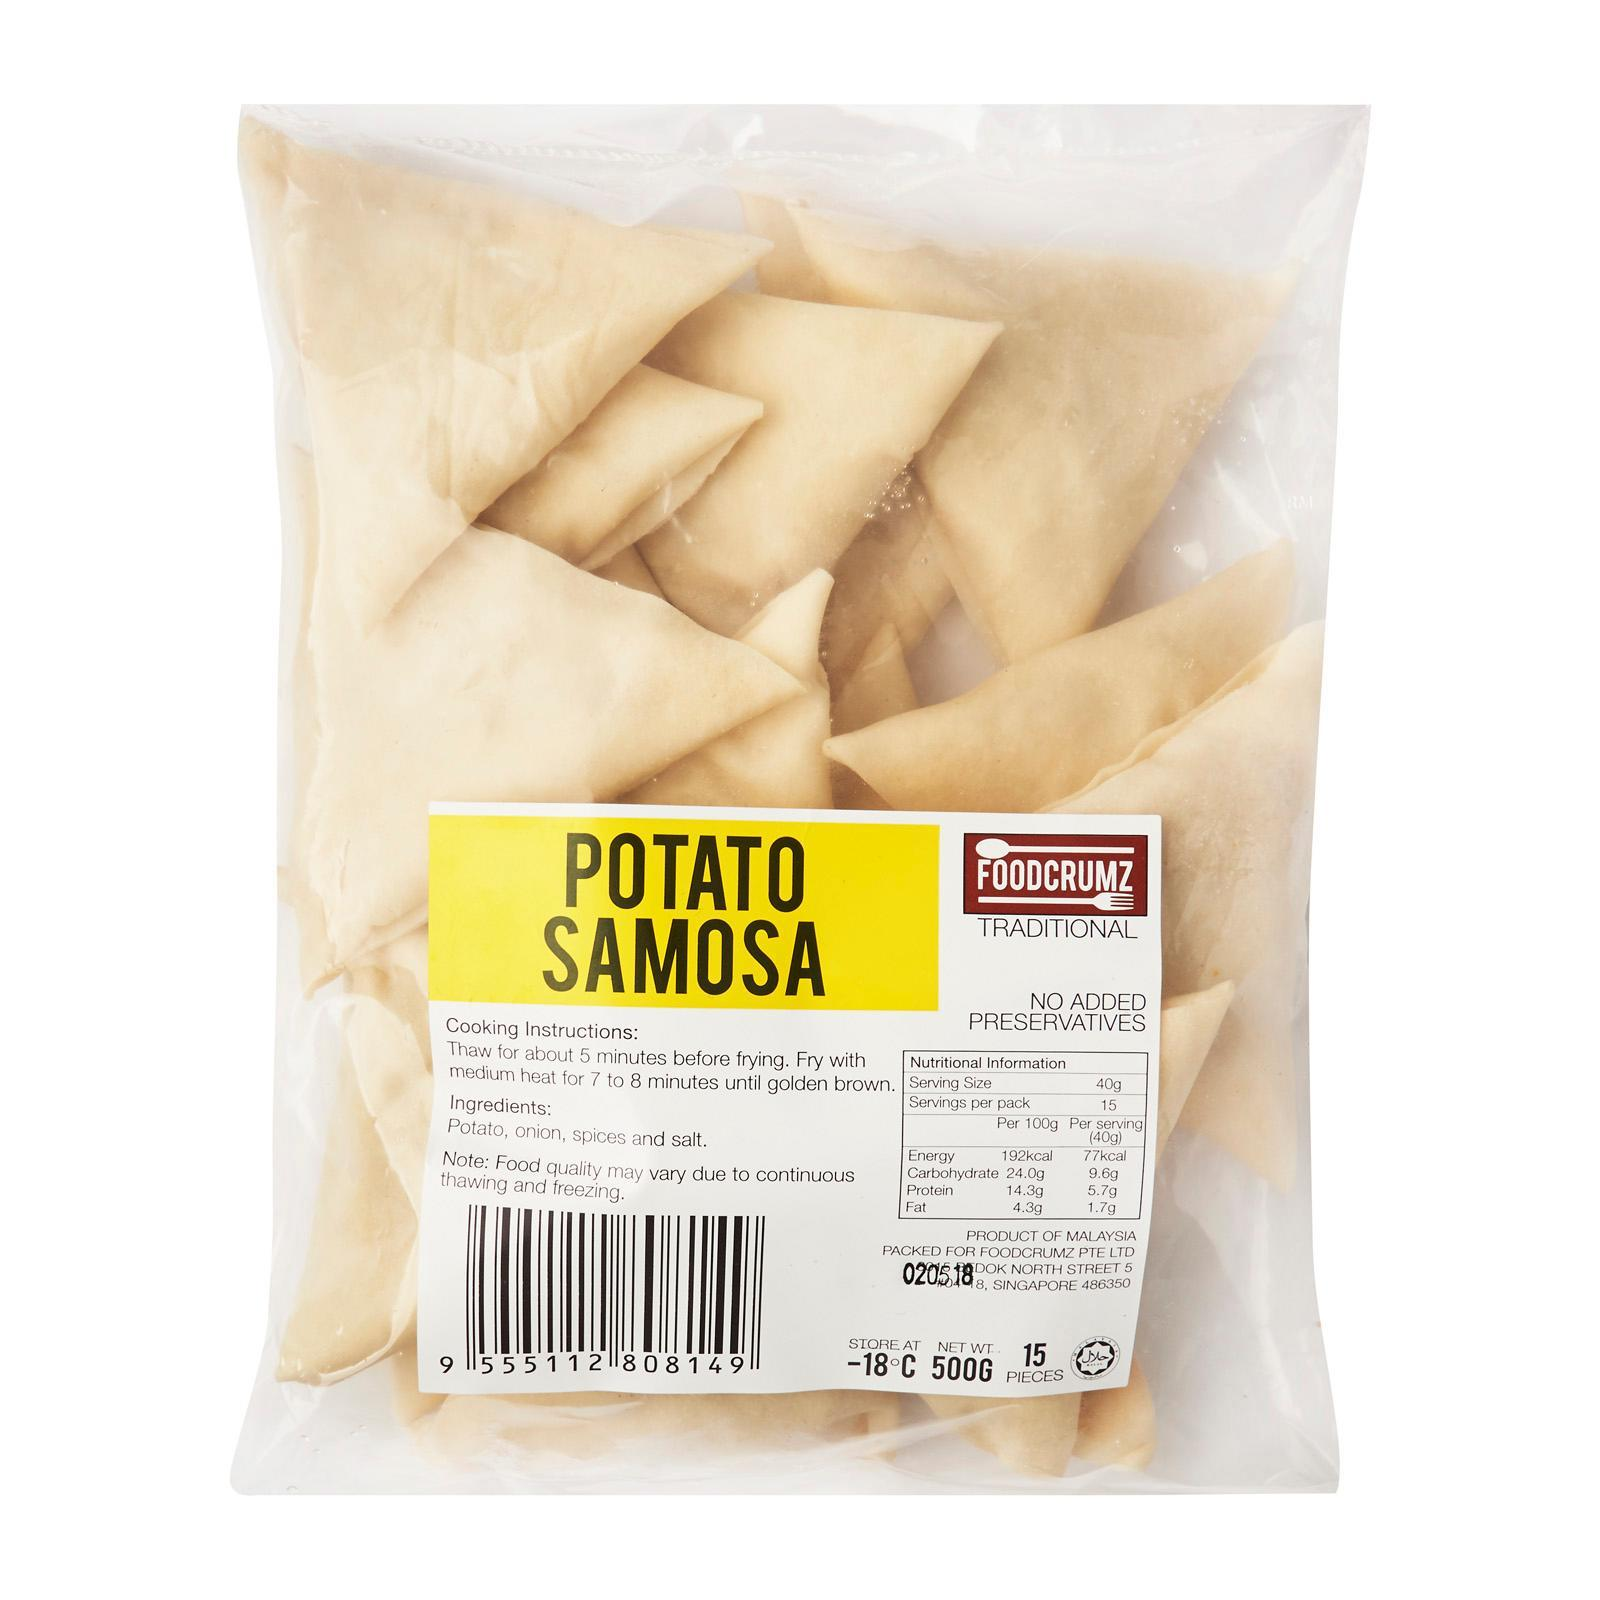 Foodcrumz Potato Samosa - Frozen